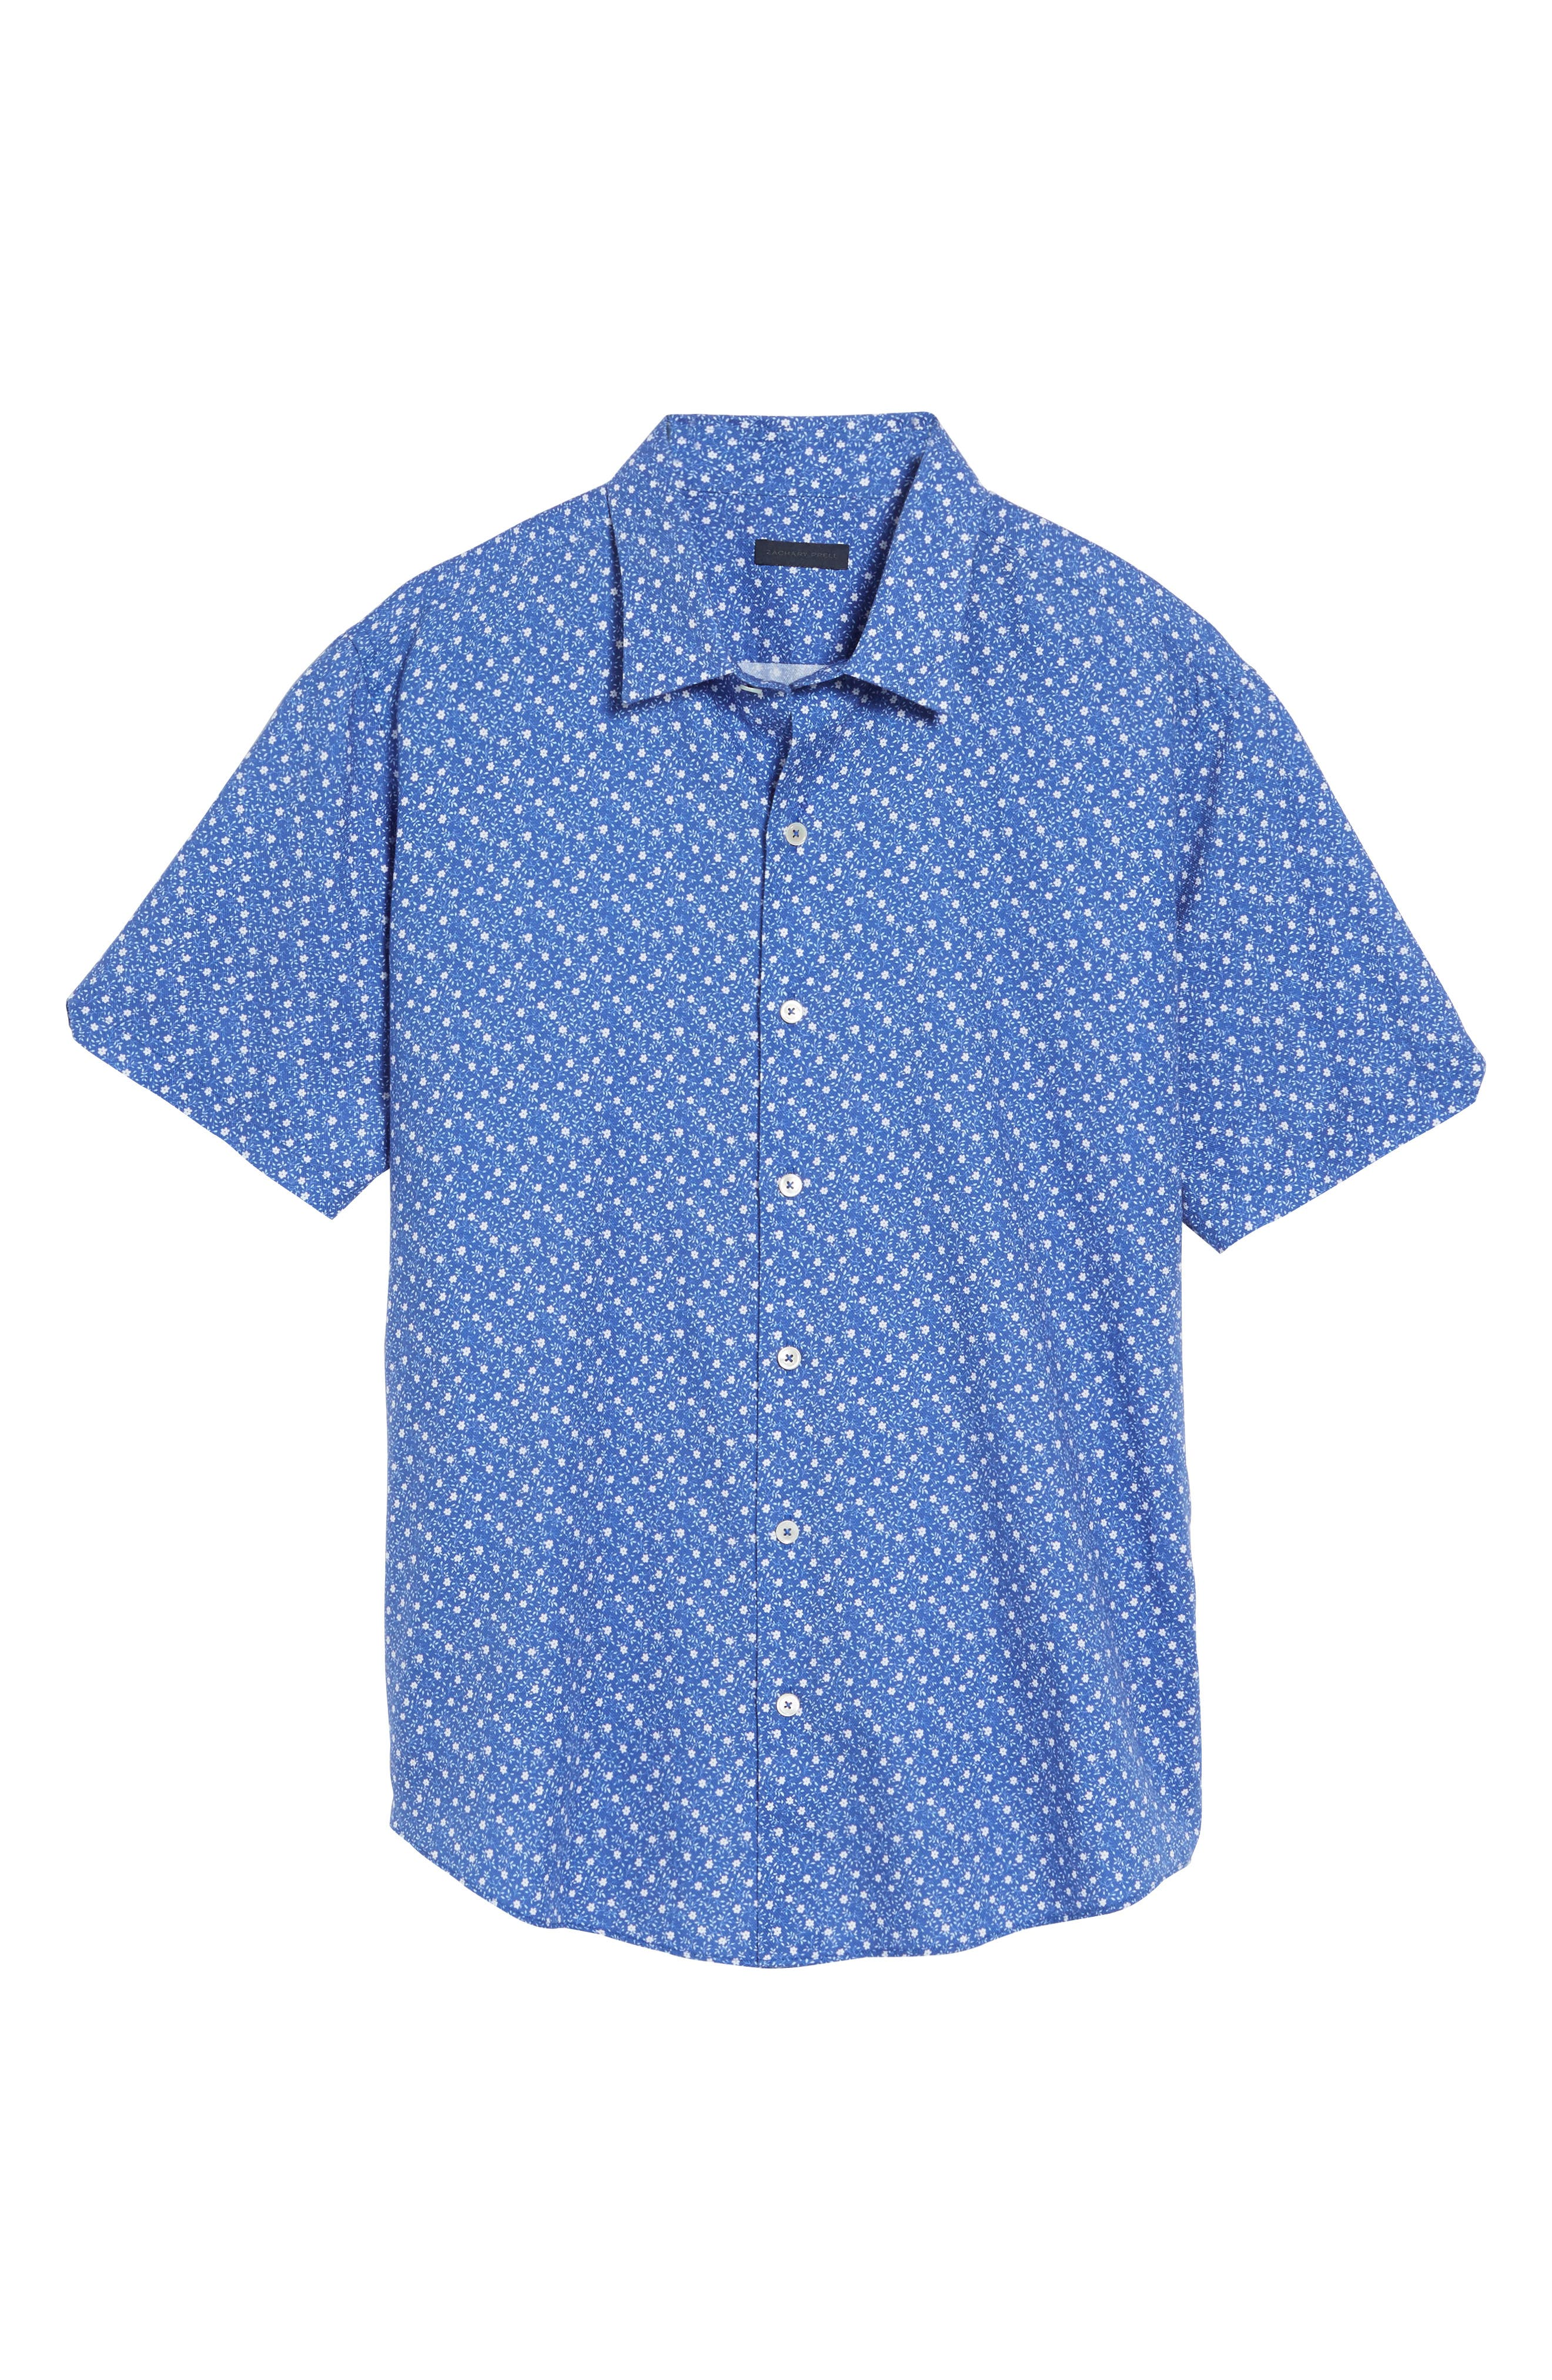 Floral Print Short Sleeve Sport Shirt,                             Alternate thumbnail 6, color,                             Blue